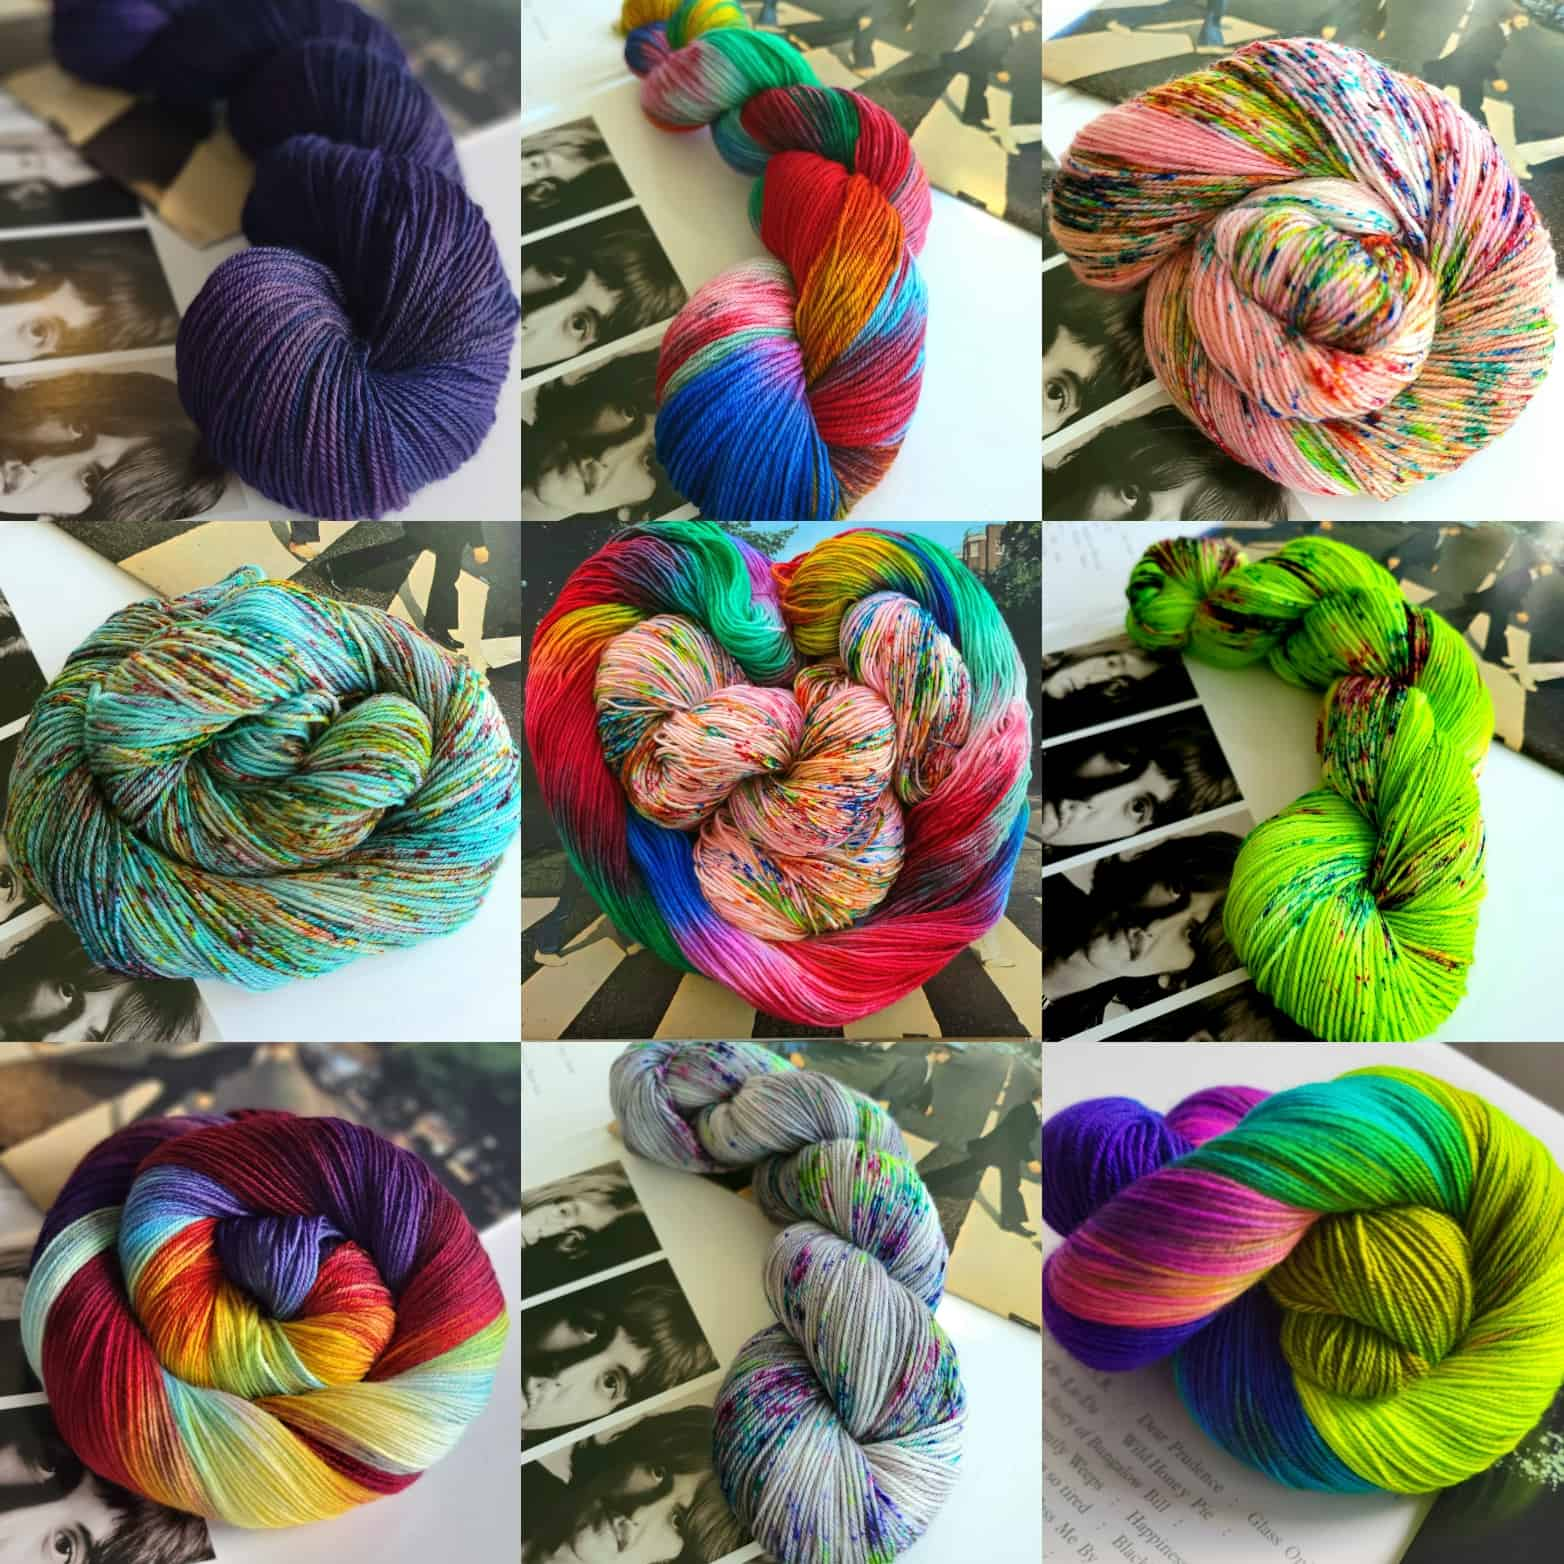 A collage of colorful yarn.